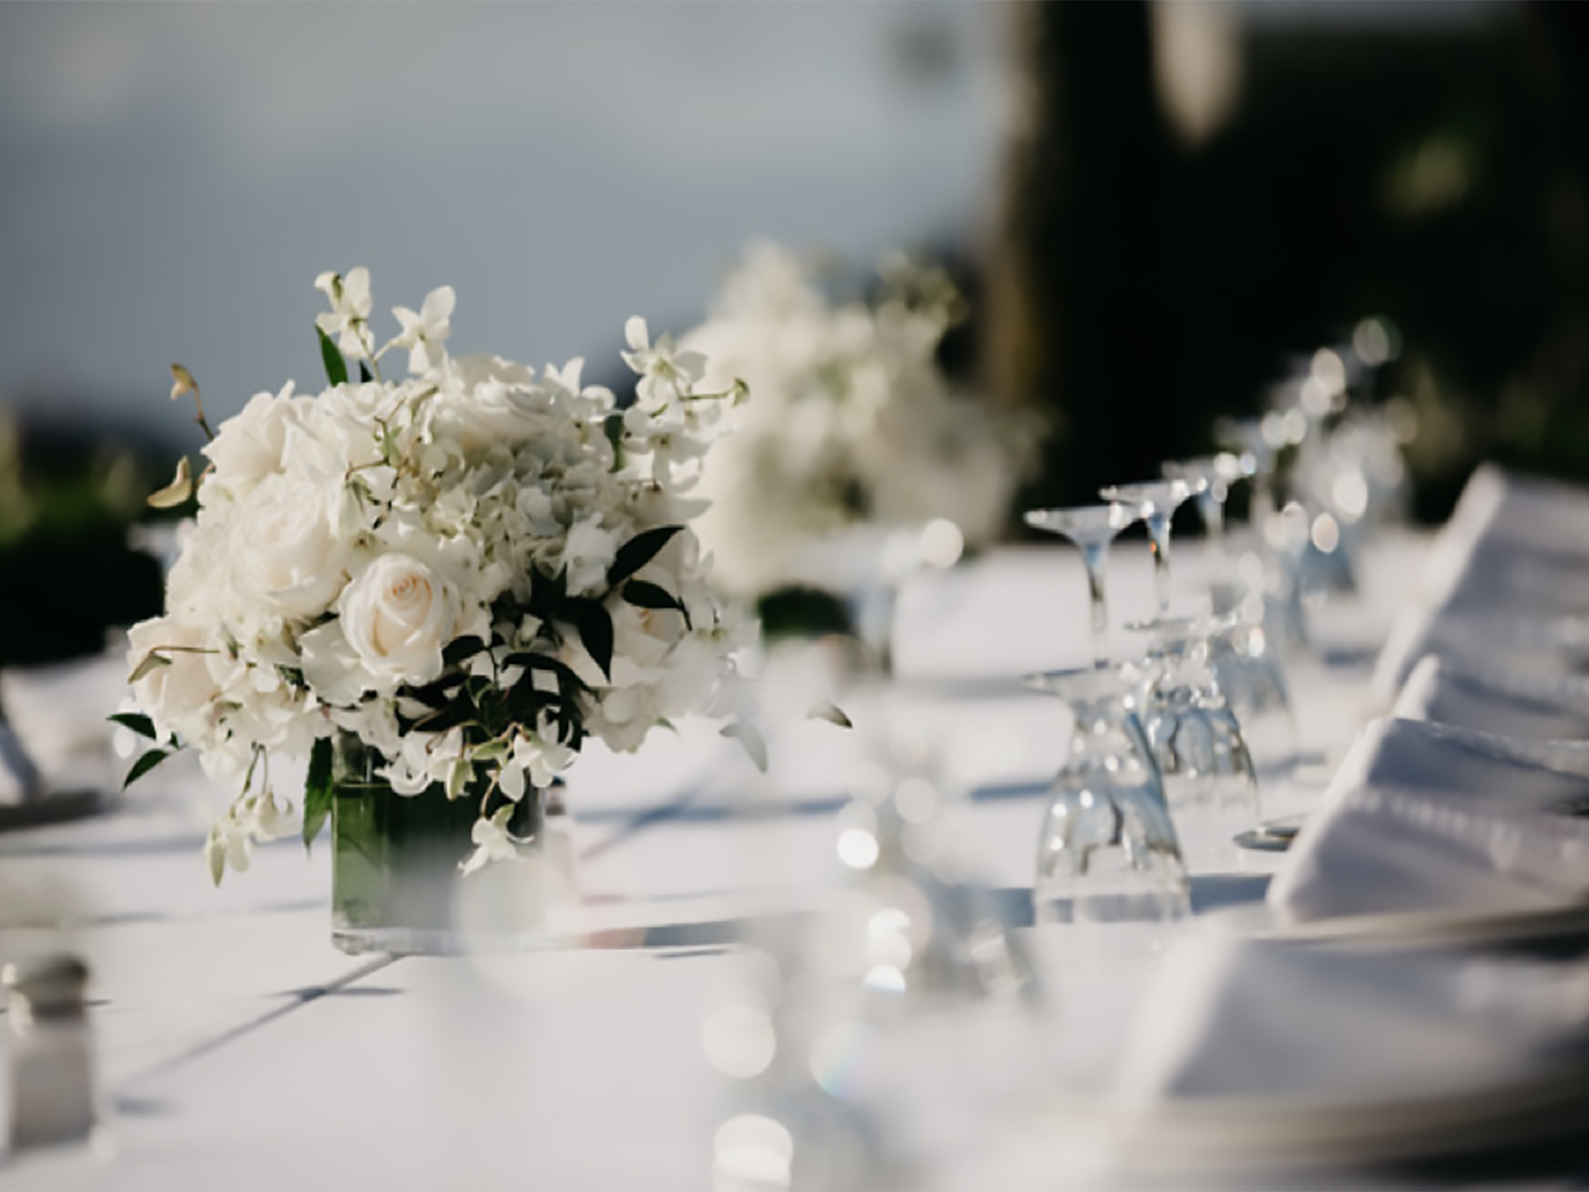 wedding table with glasses and white roses